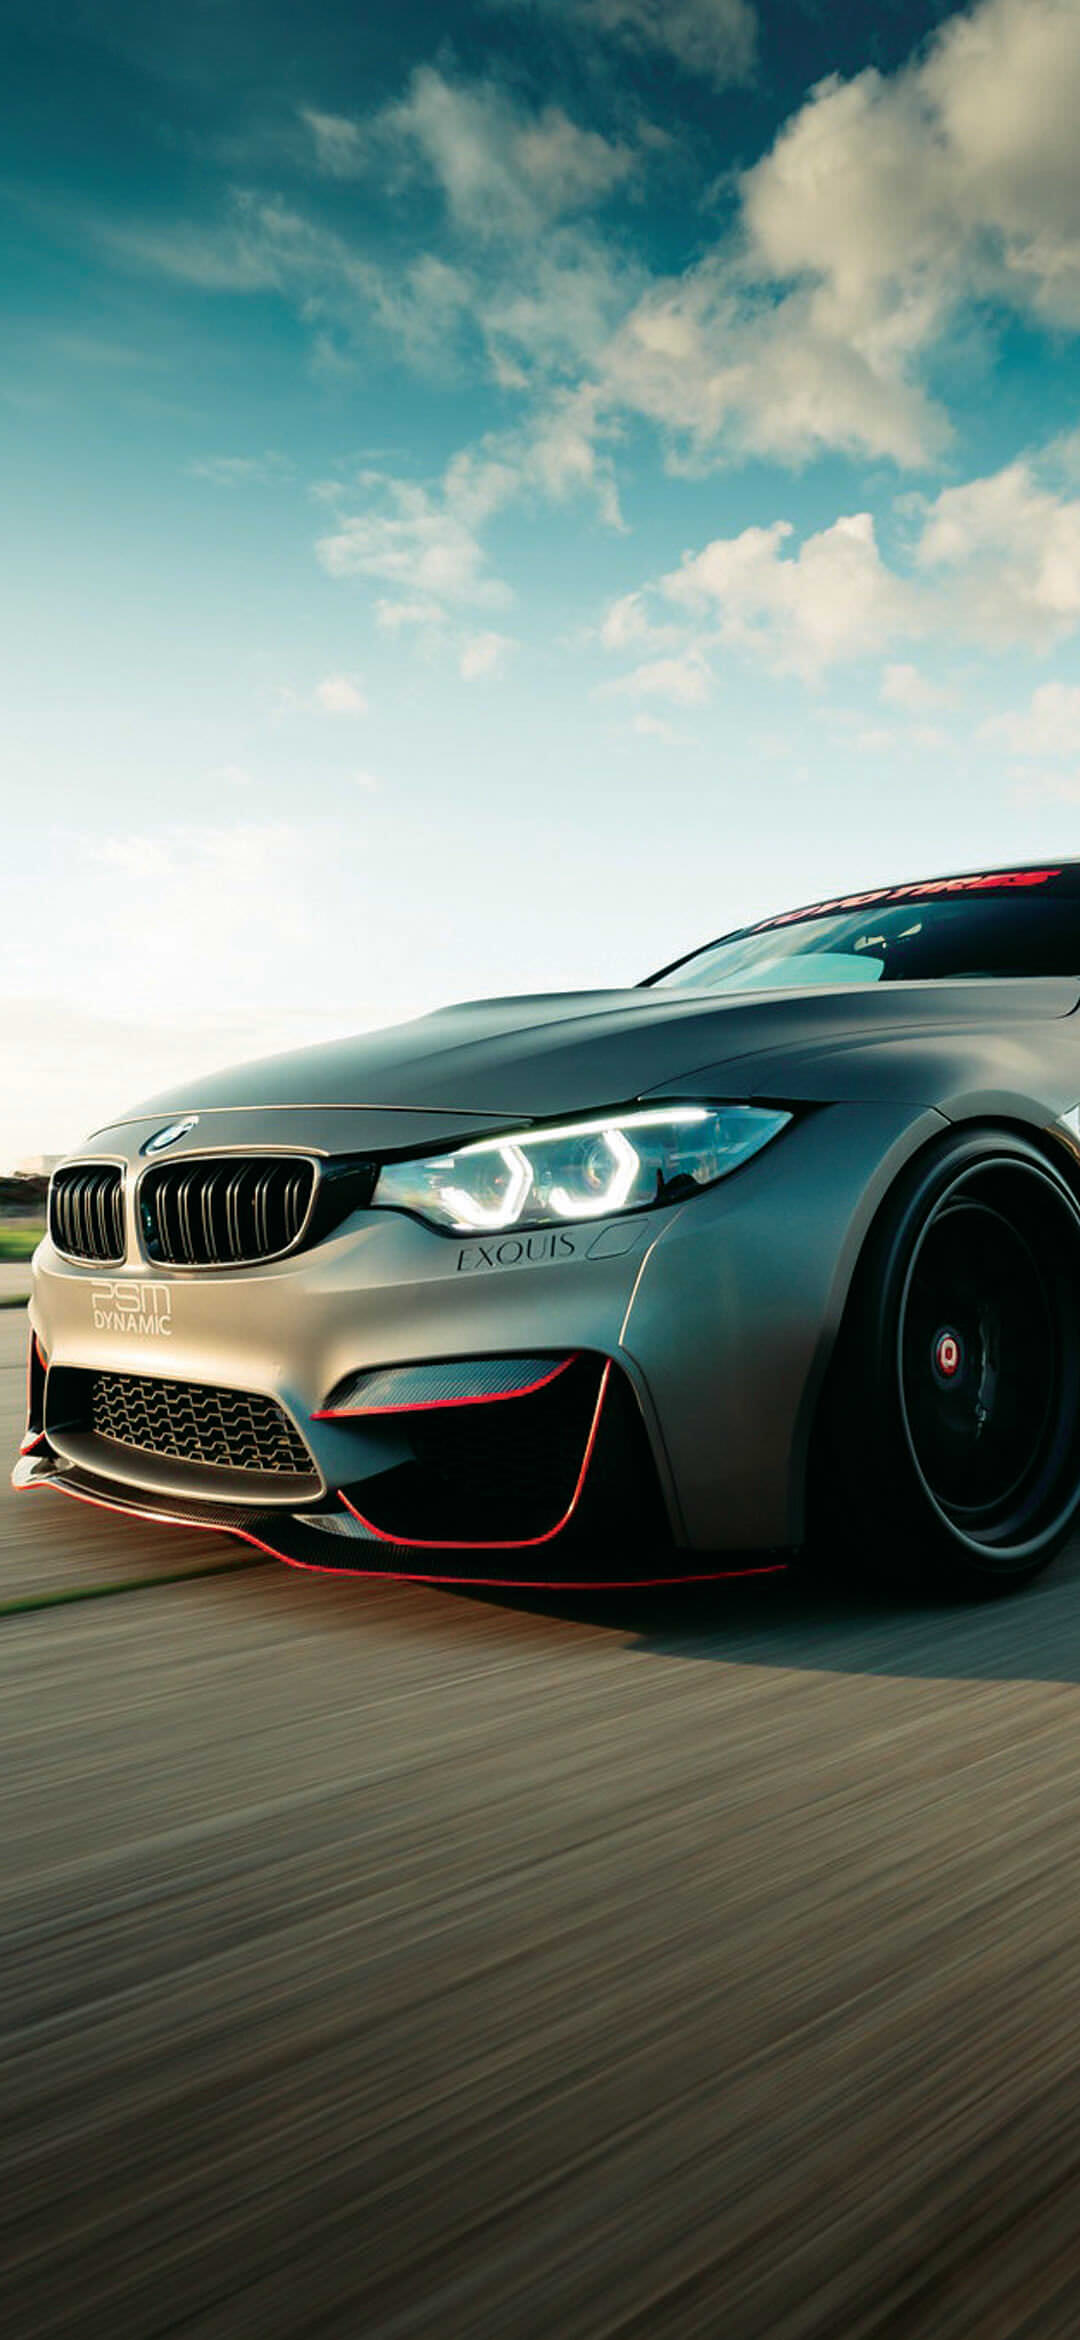 Bmw M4 Sport Car 1080 2340 Webrfree